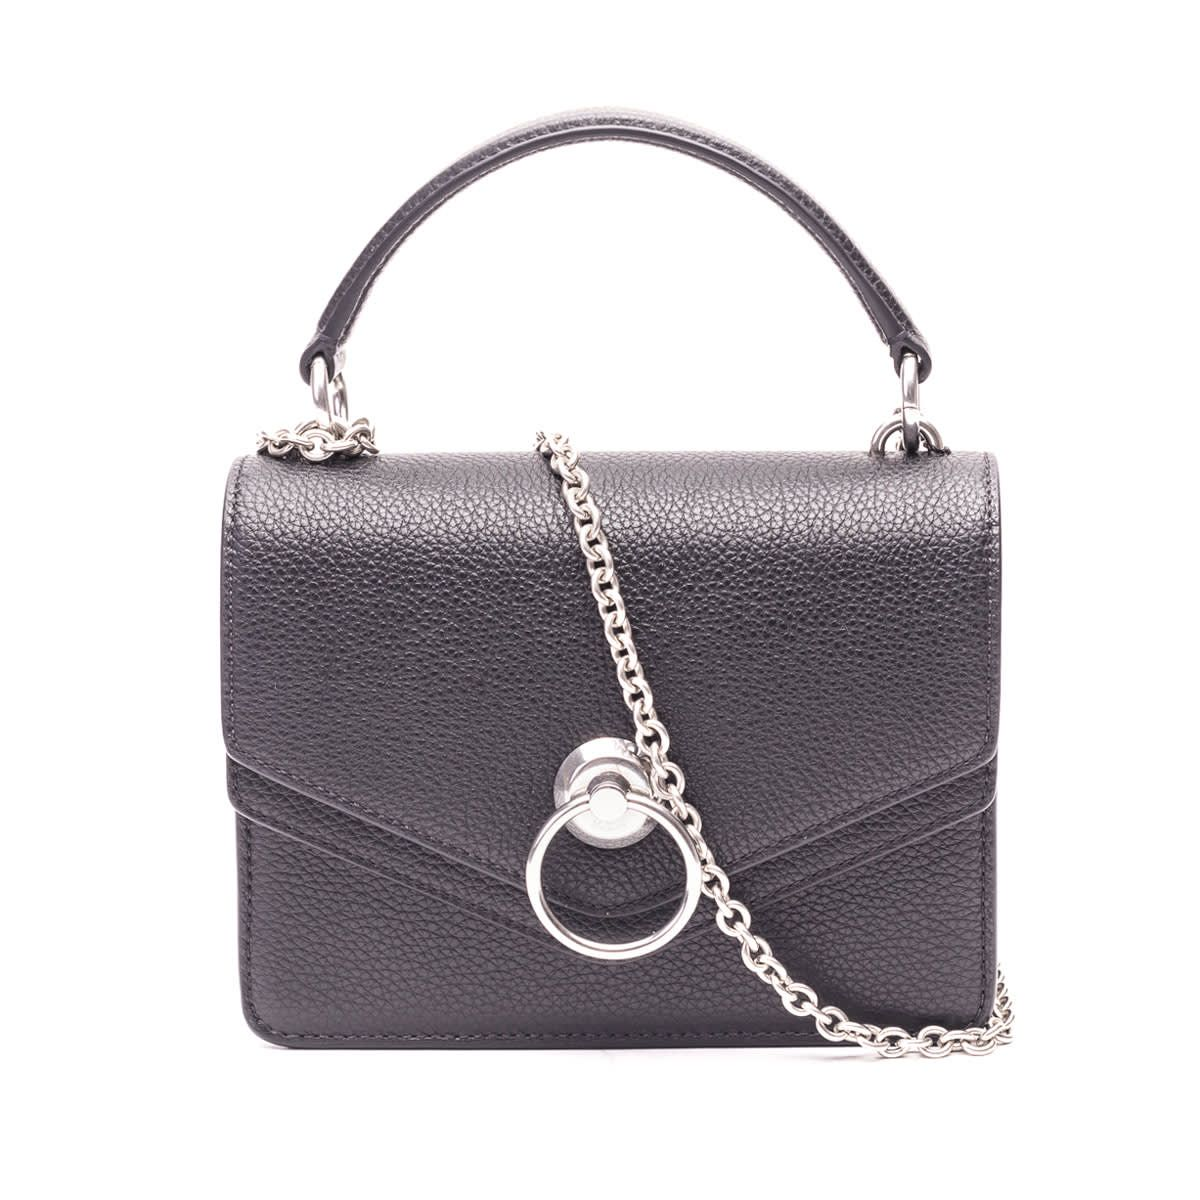 MULBERRY BAG. #mulberry #bags #shoulder bags #hand bags #leather #mulberrybag